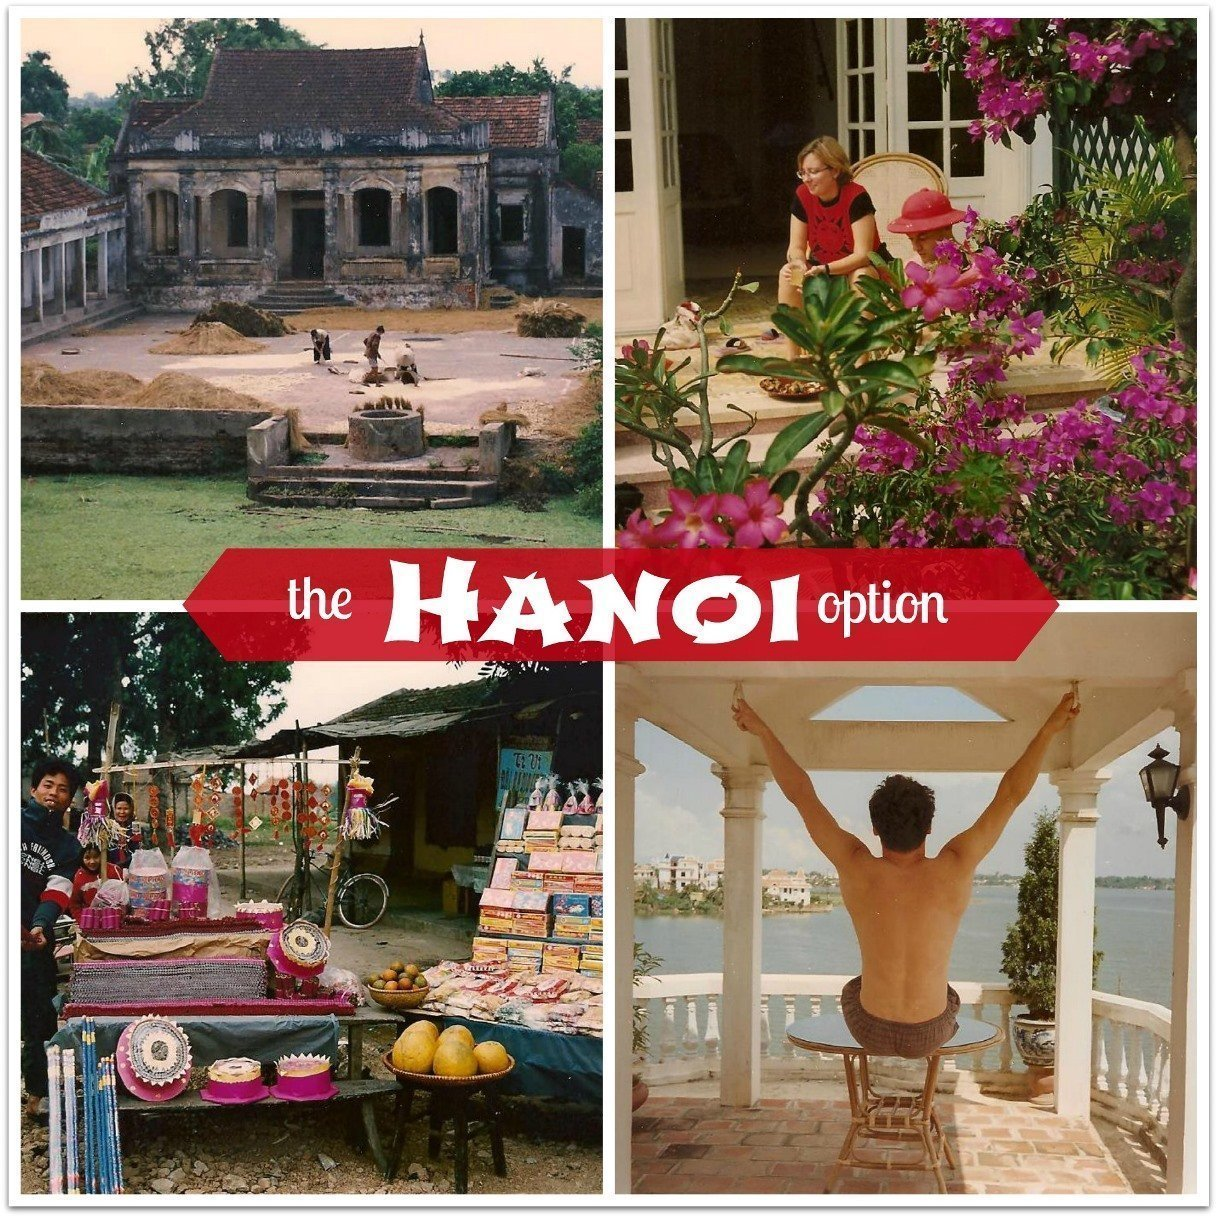 Hanoi option for wedding